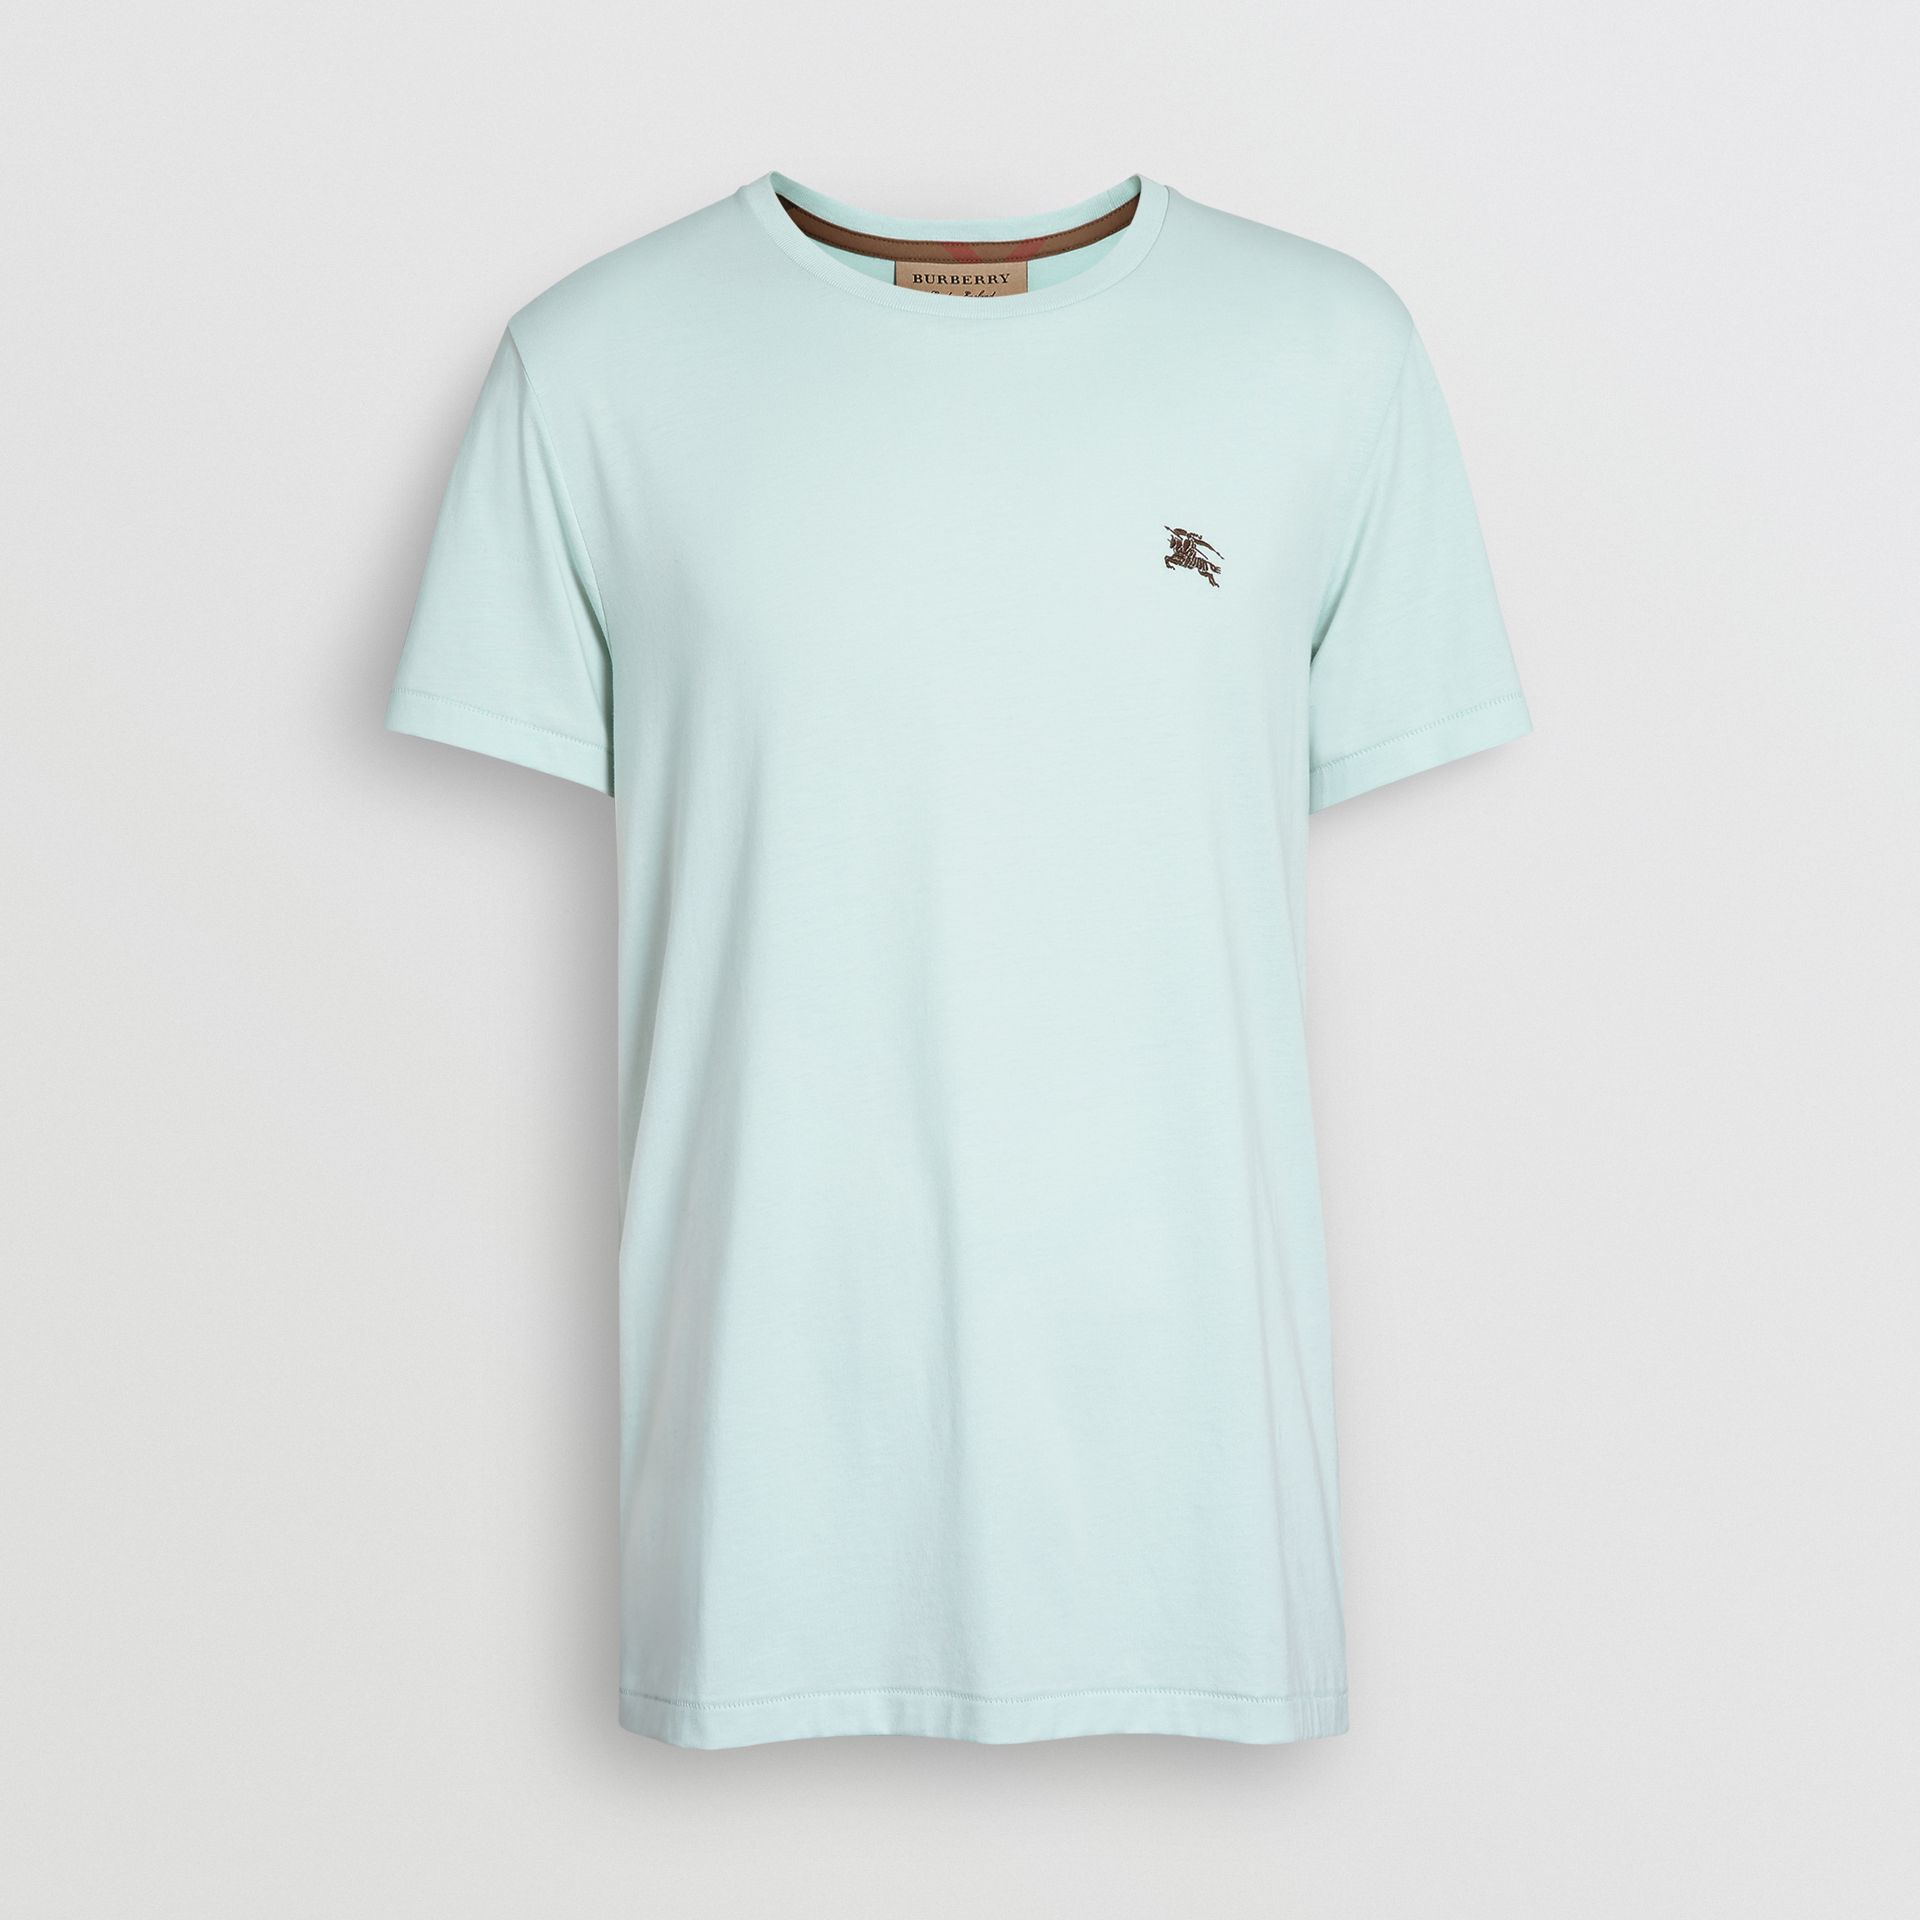 Cotton Jersey T-shirt in Pearl Blue - Men | Burberry - gallery image 3